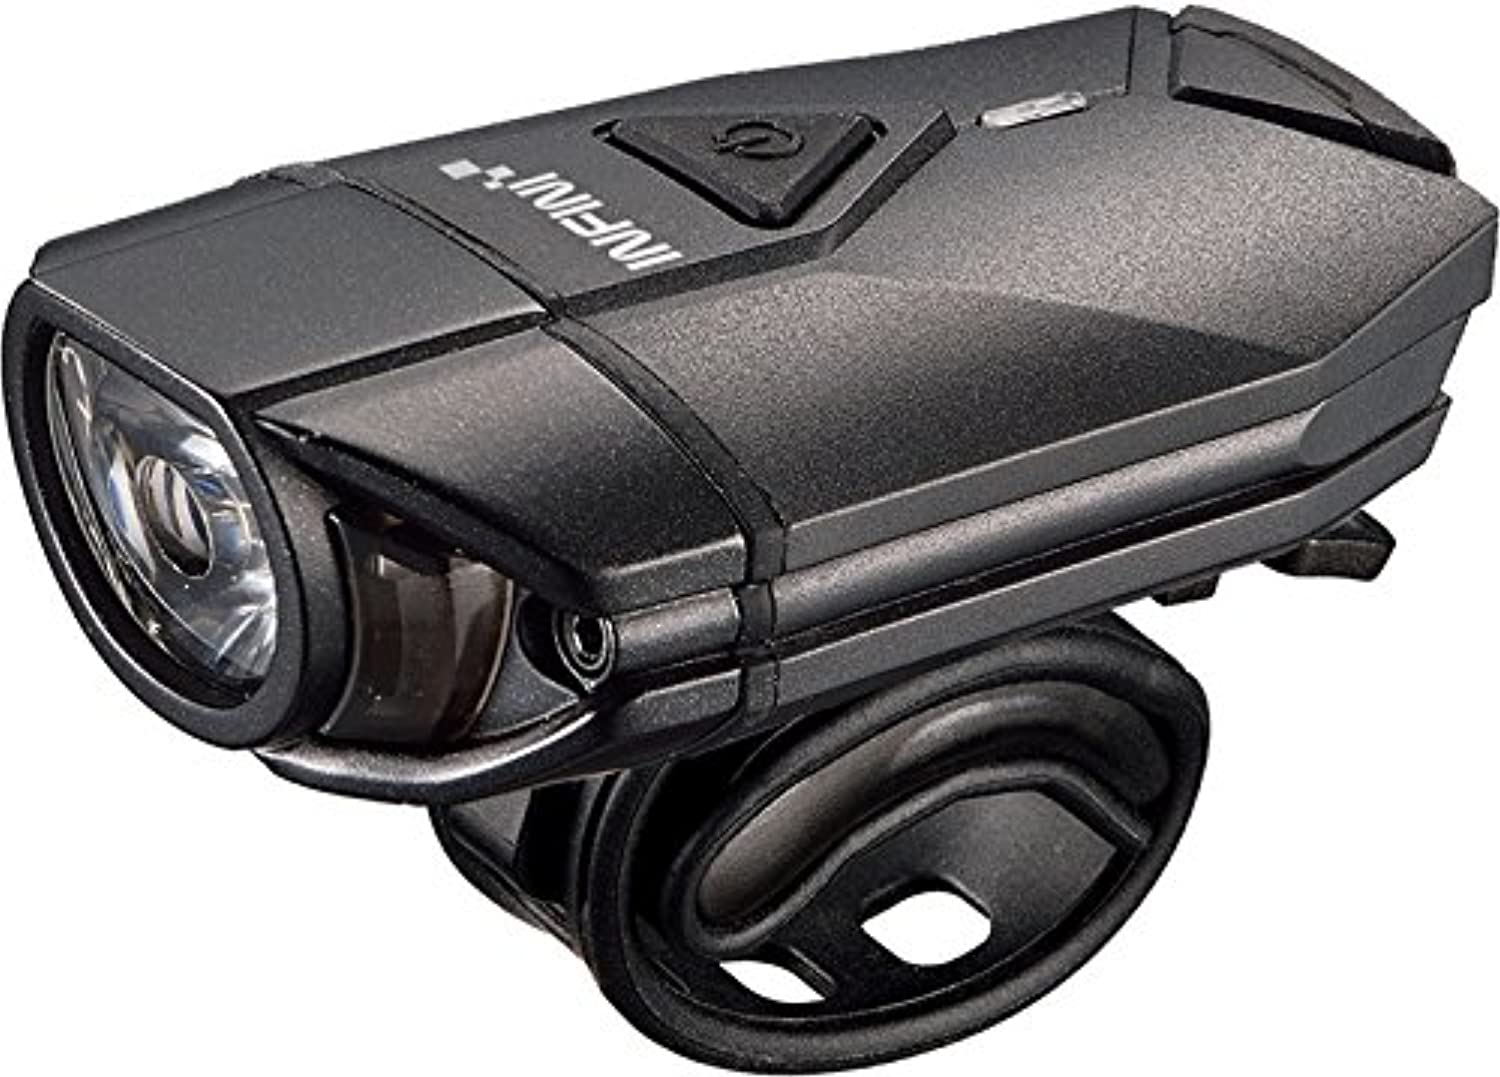 Infini I-340P TRON 800lm USB Front Light